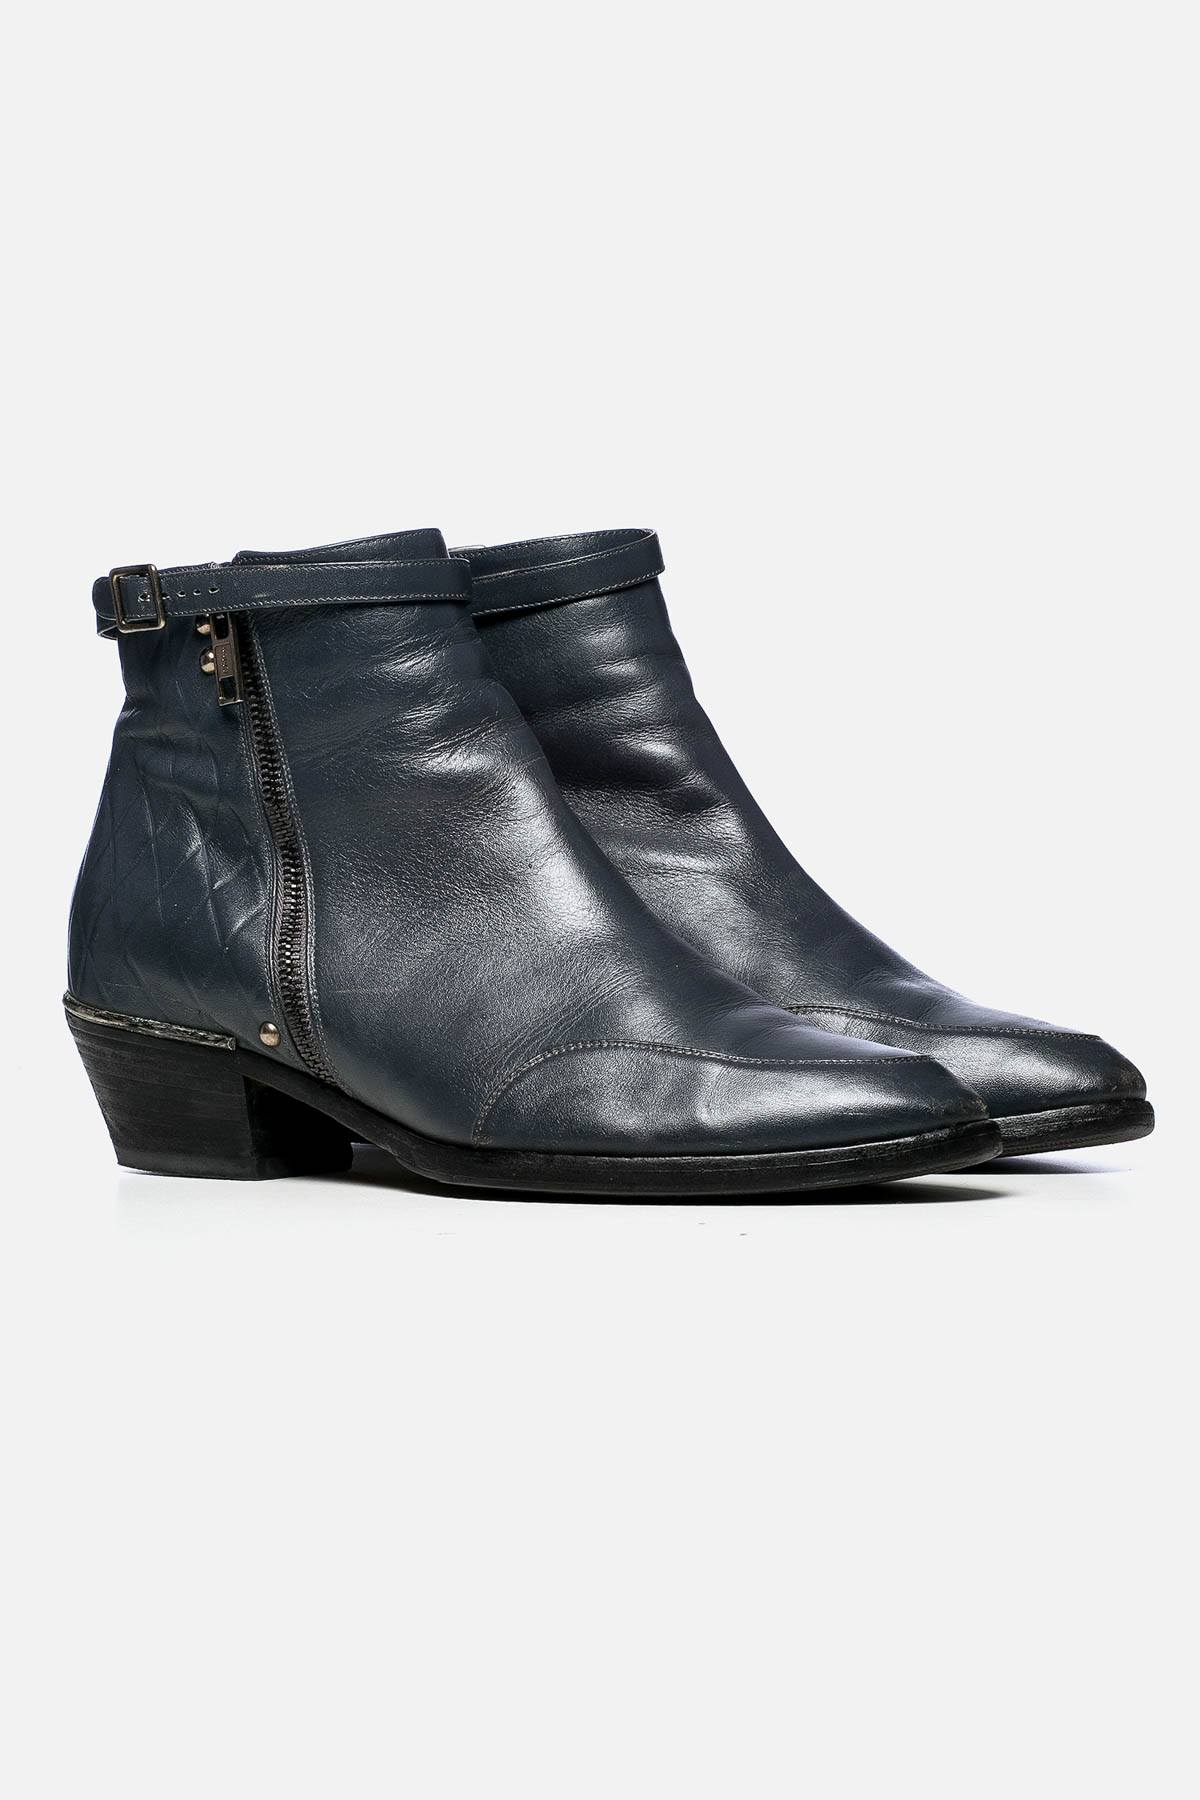 LEATHER PONTED-TOE ANKLE BOOTS